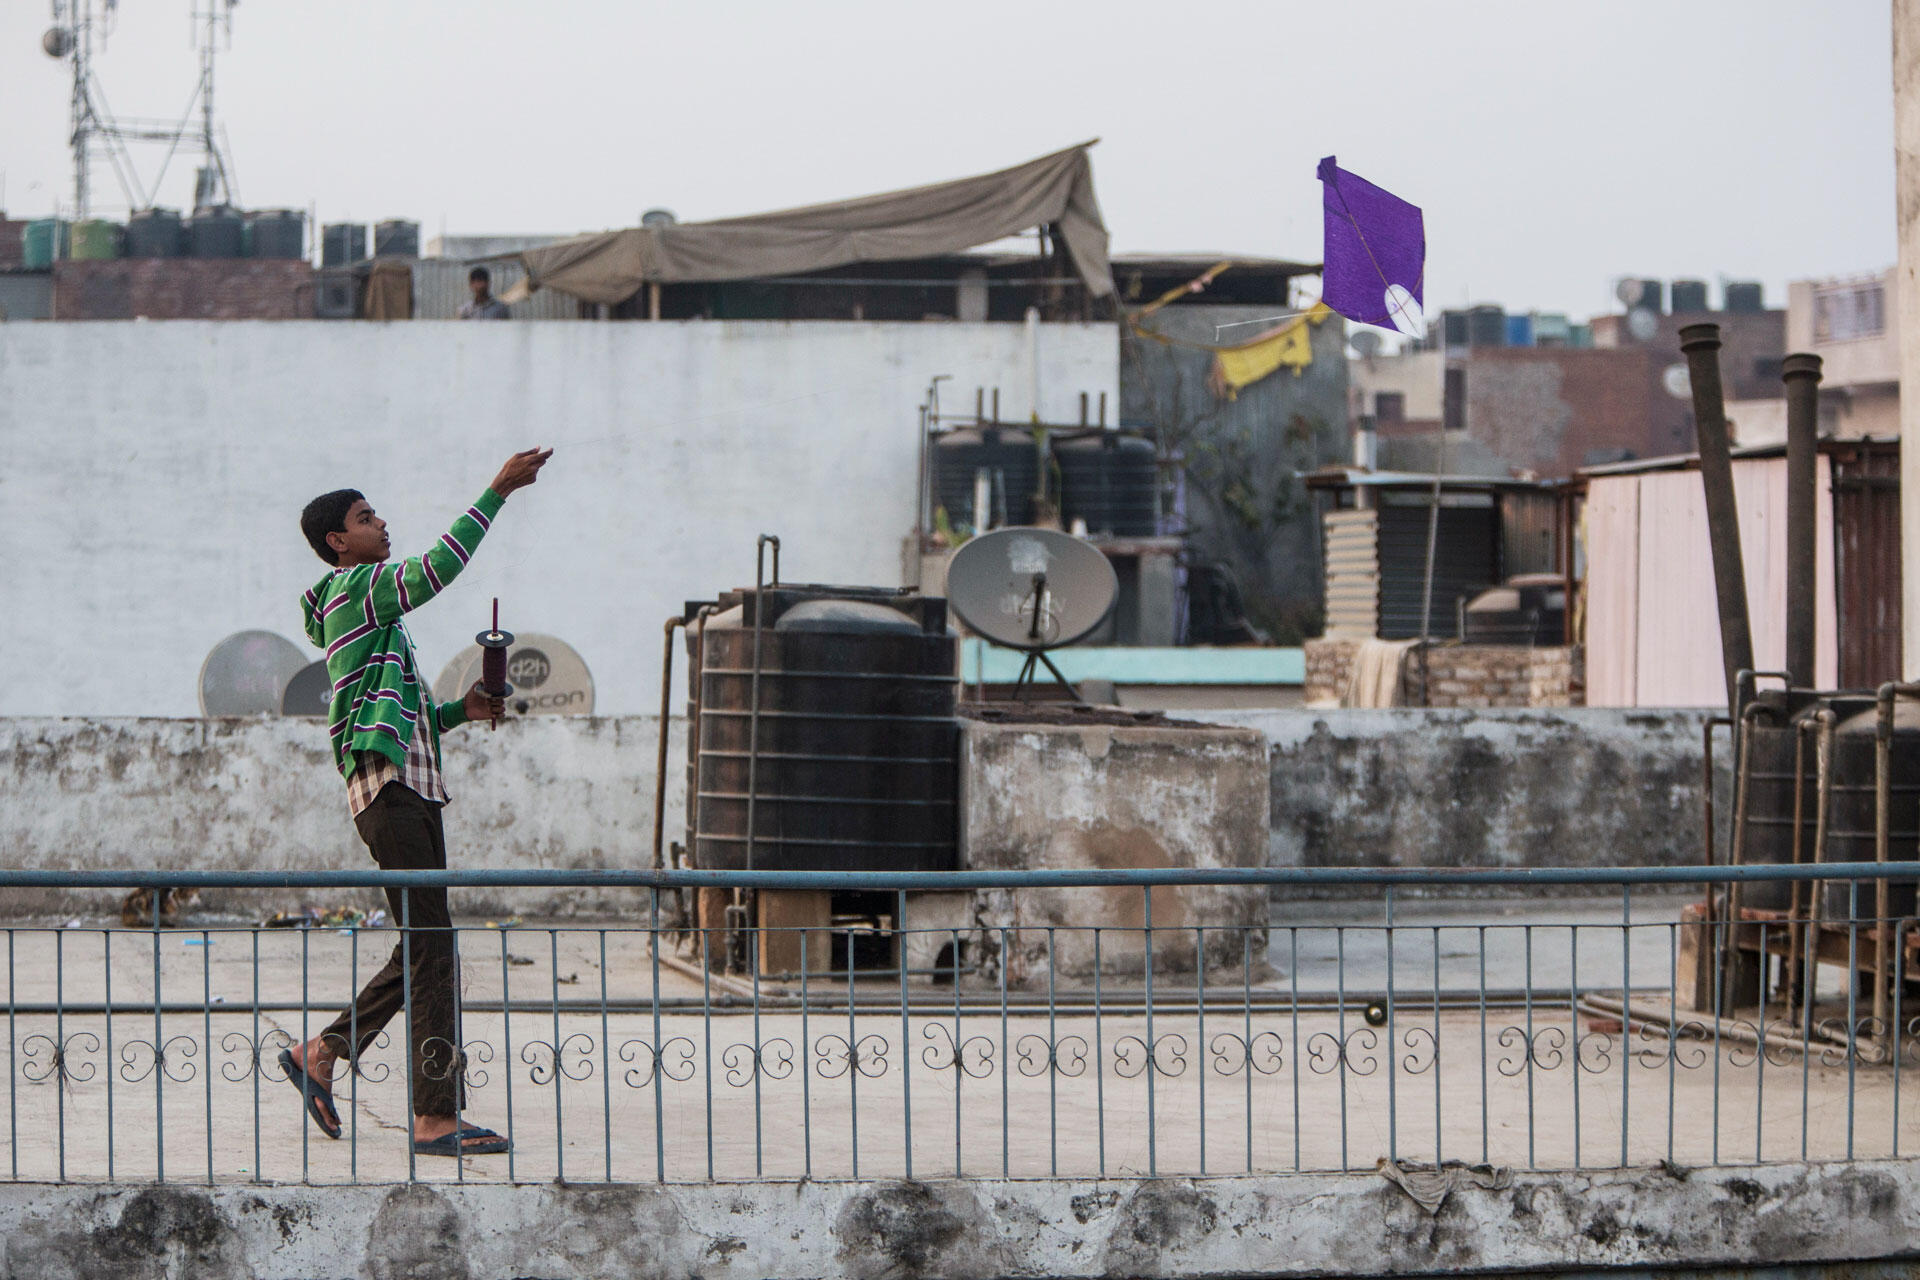 A young man flies a paper kite. The popular pastime can have fatal consequences for the avian kites, which can become tangled up in or cut by the string. Sharp threads have fatally injured humans, too. Luke Massey